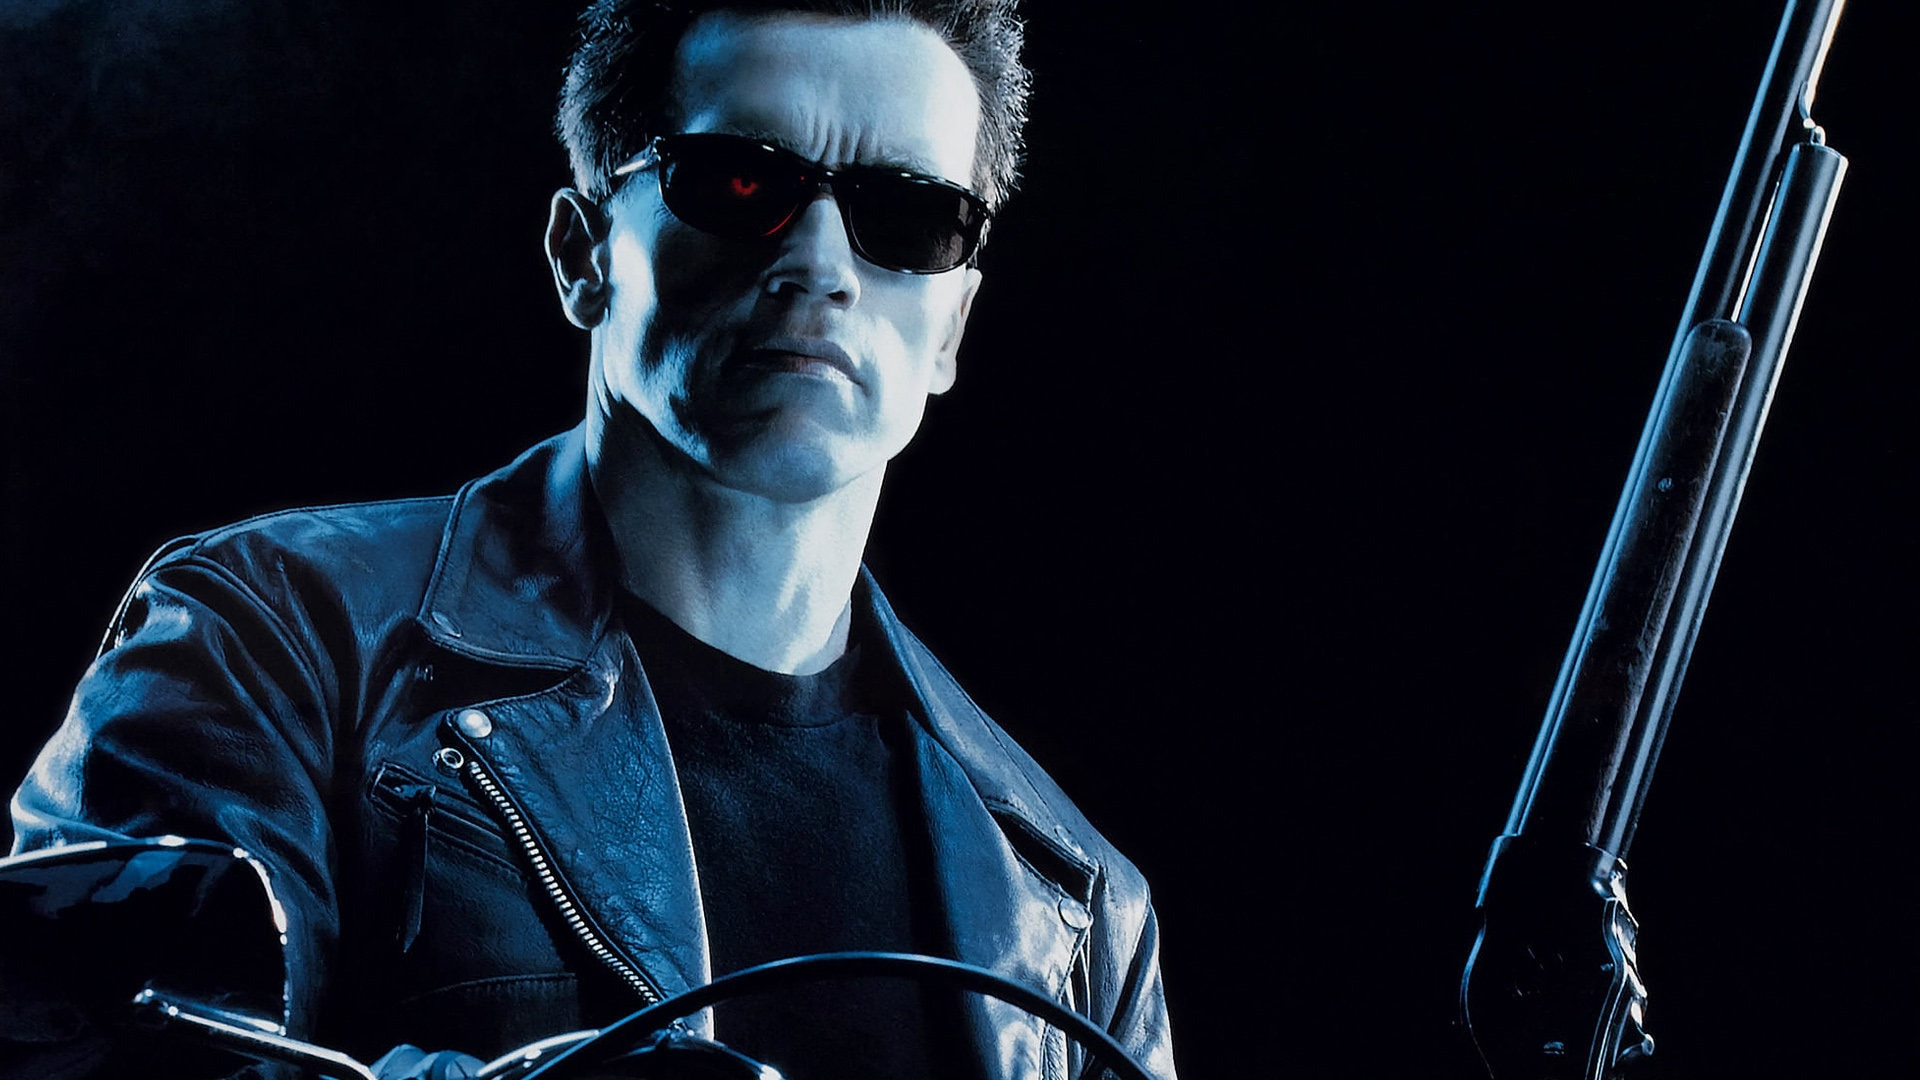 terminator 2 3D - Terminator 2: Judgment Day Back In August... In 3D